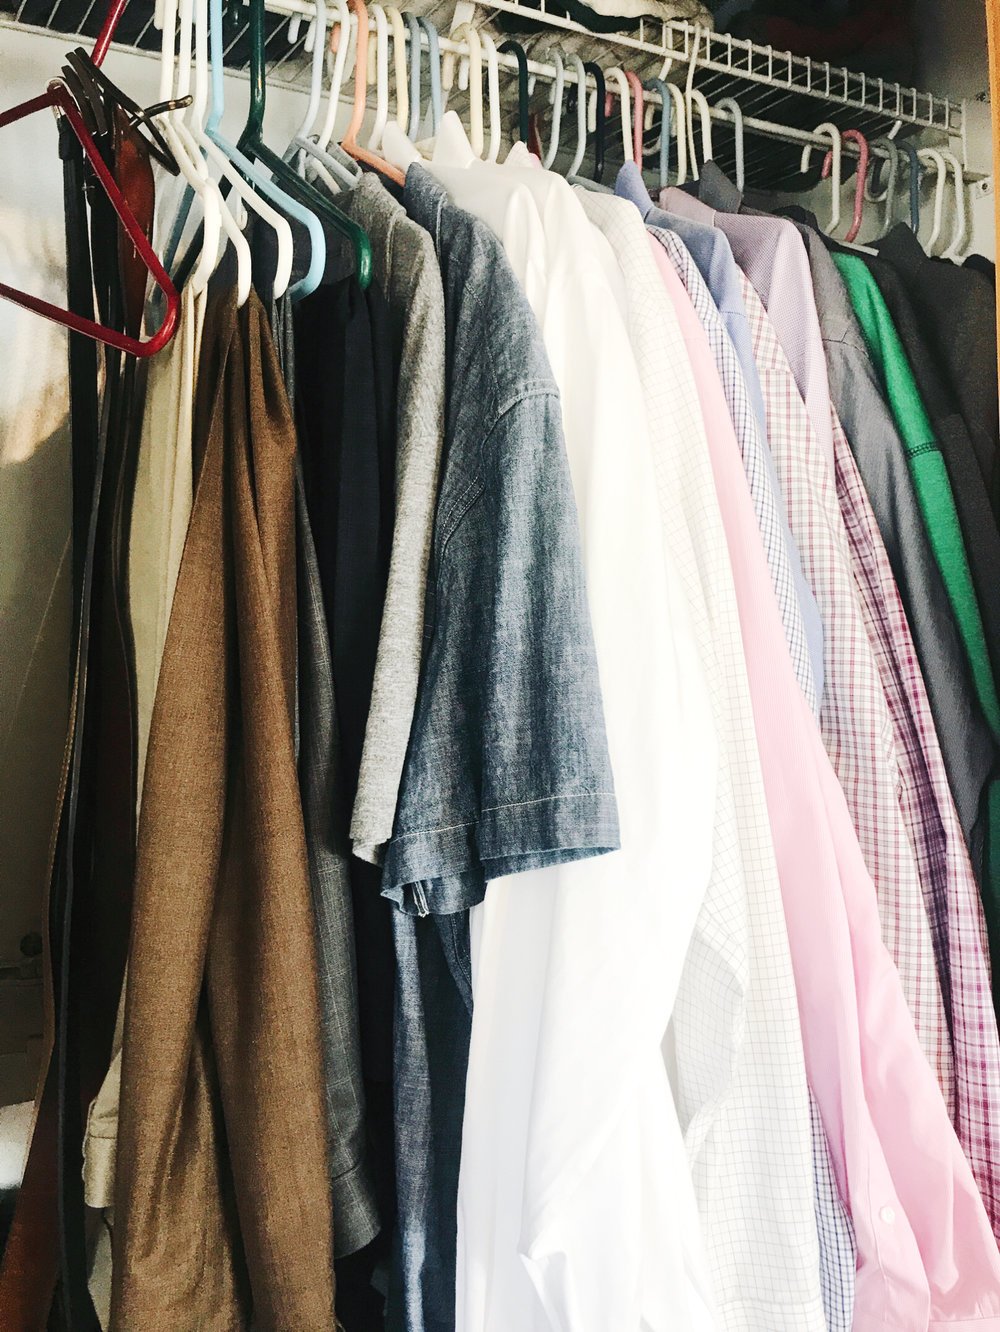 How to Makeover a Bedroom Closet Step 2 of 6 over at hprallandco.com